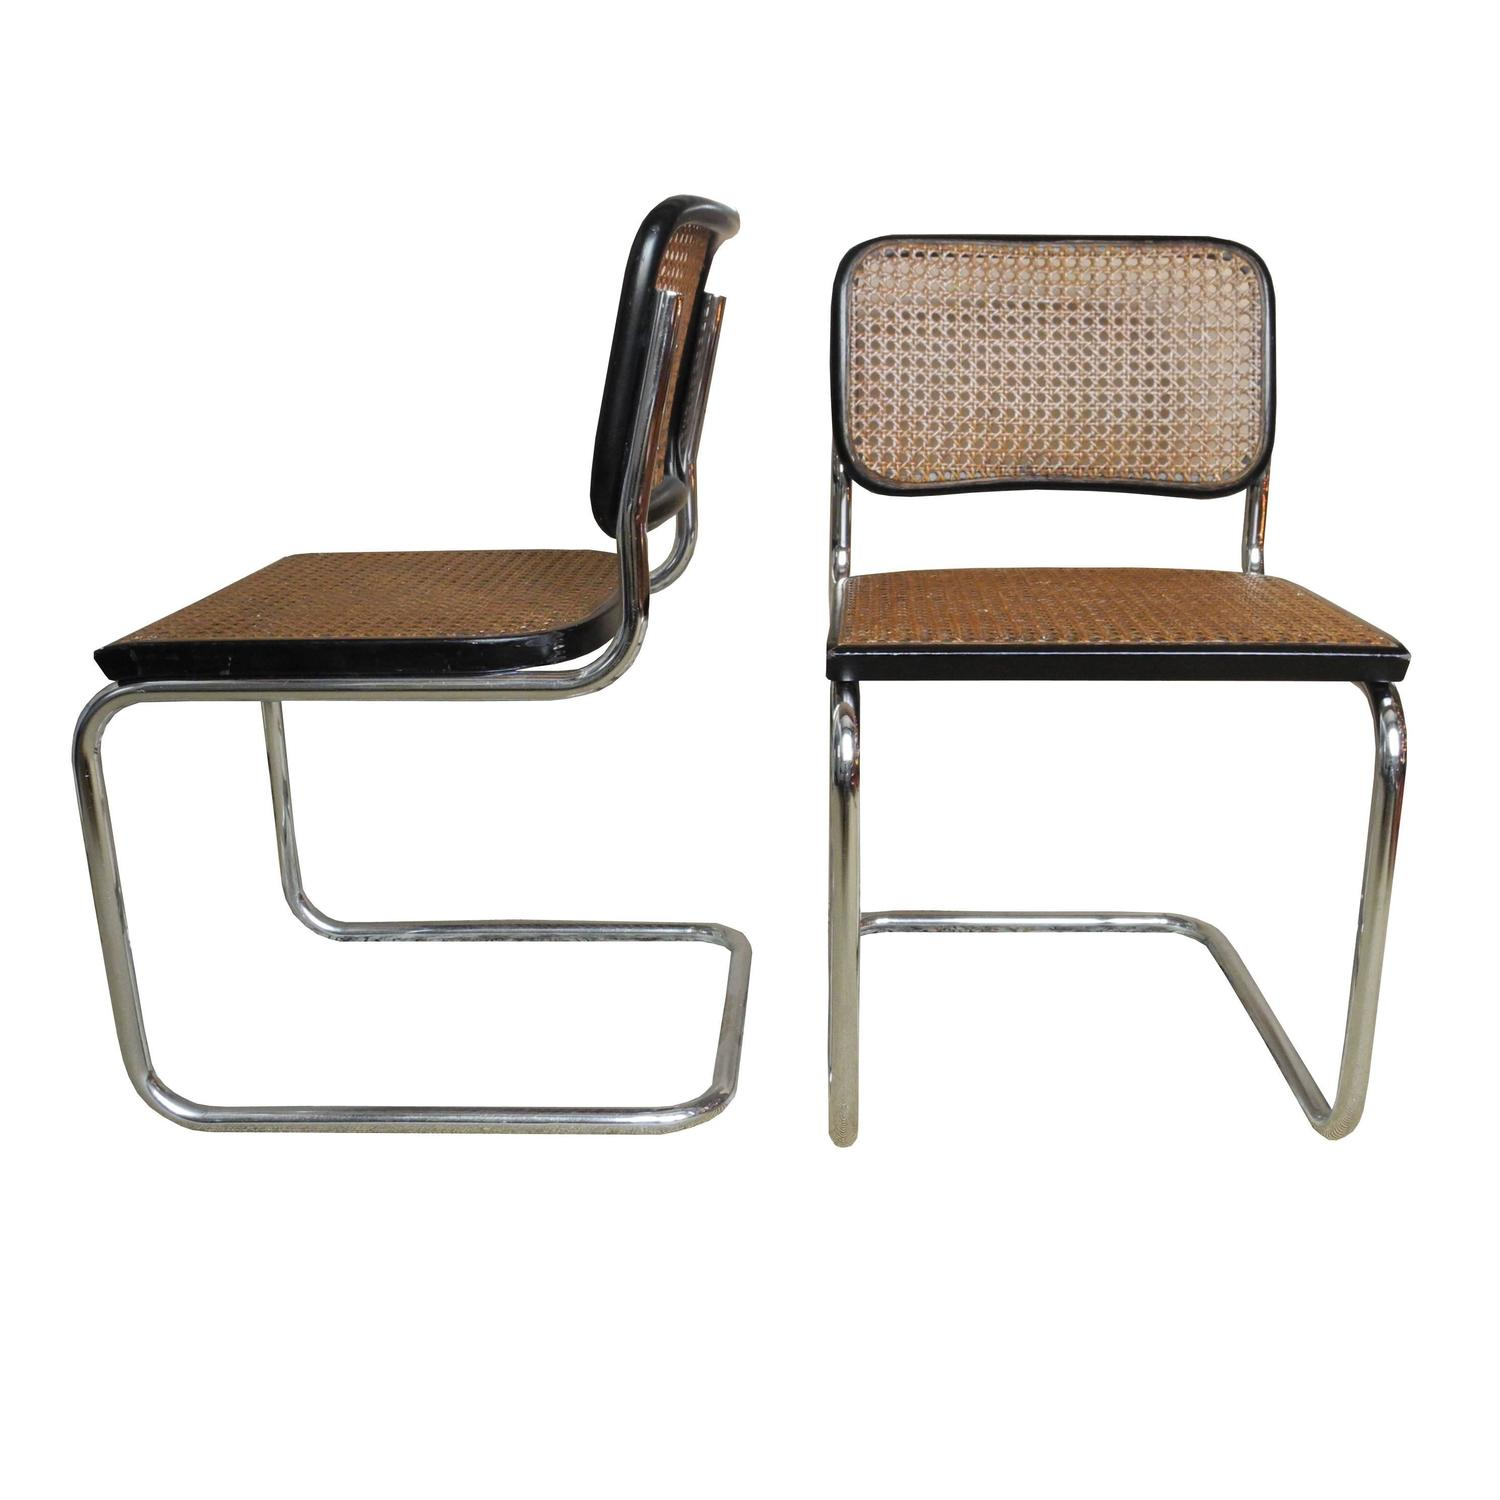 Pair of Vintage Bauhaus Cesca Chairs by Marcel Breuer for Stendig